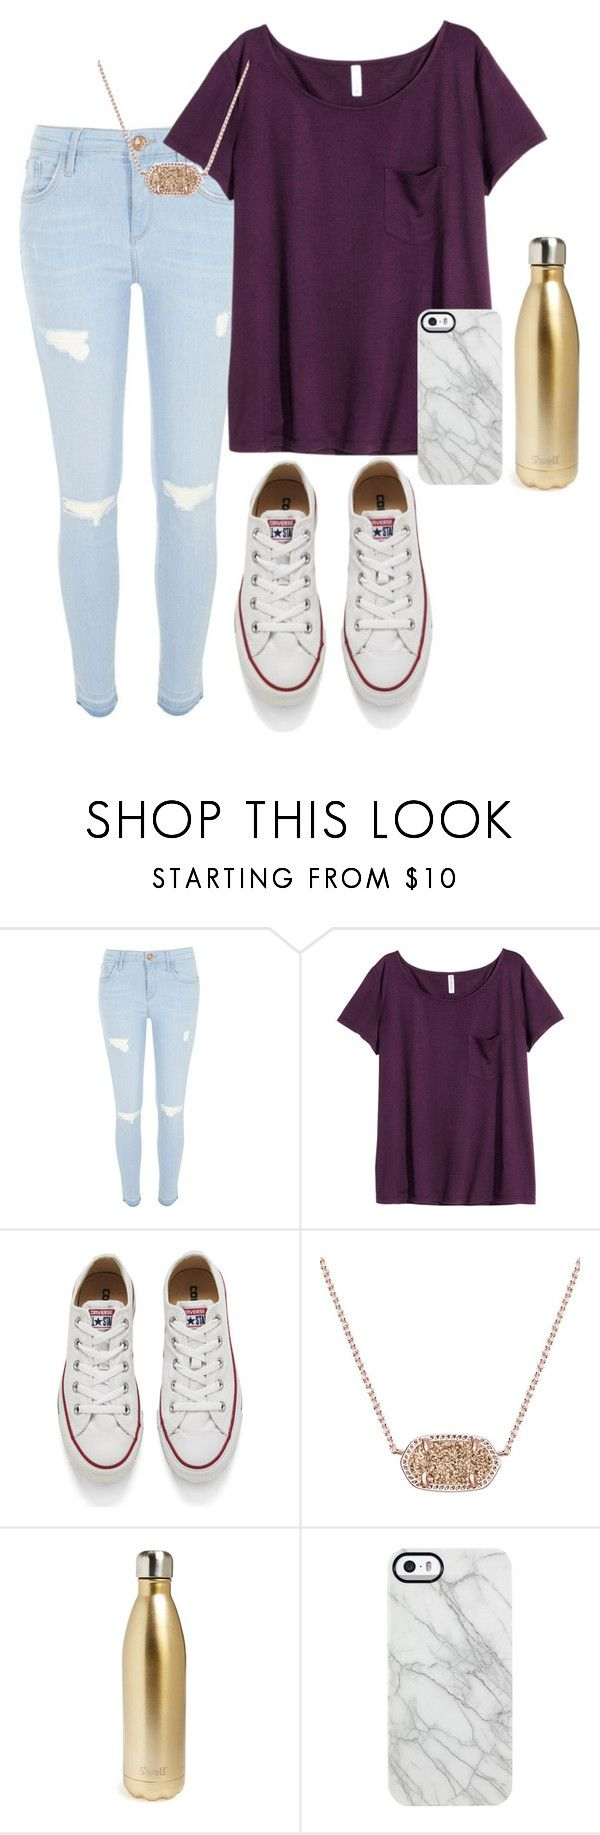 """""""Casual date"""" by sadiepatton ❤ liked on Polyvore featuring River Island, H&M, Converse, Kendra Scott, S'well, Uncommon, women's clothing, women, female and woman"""